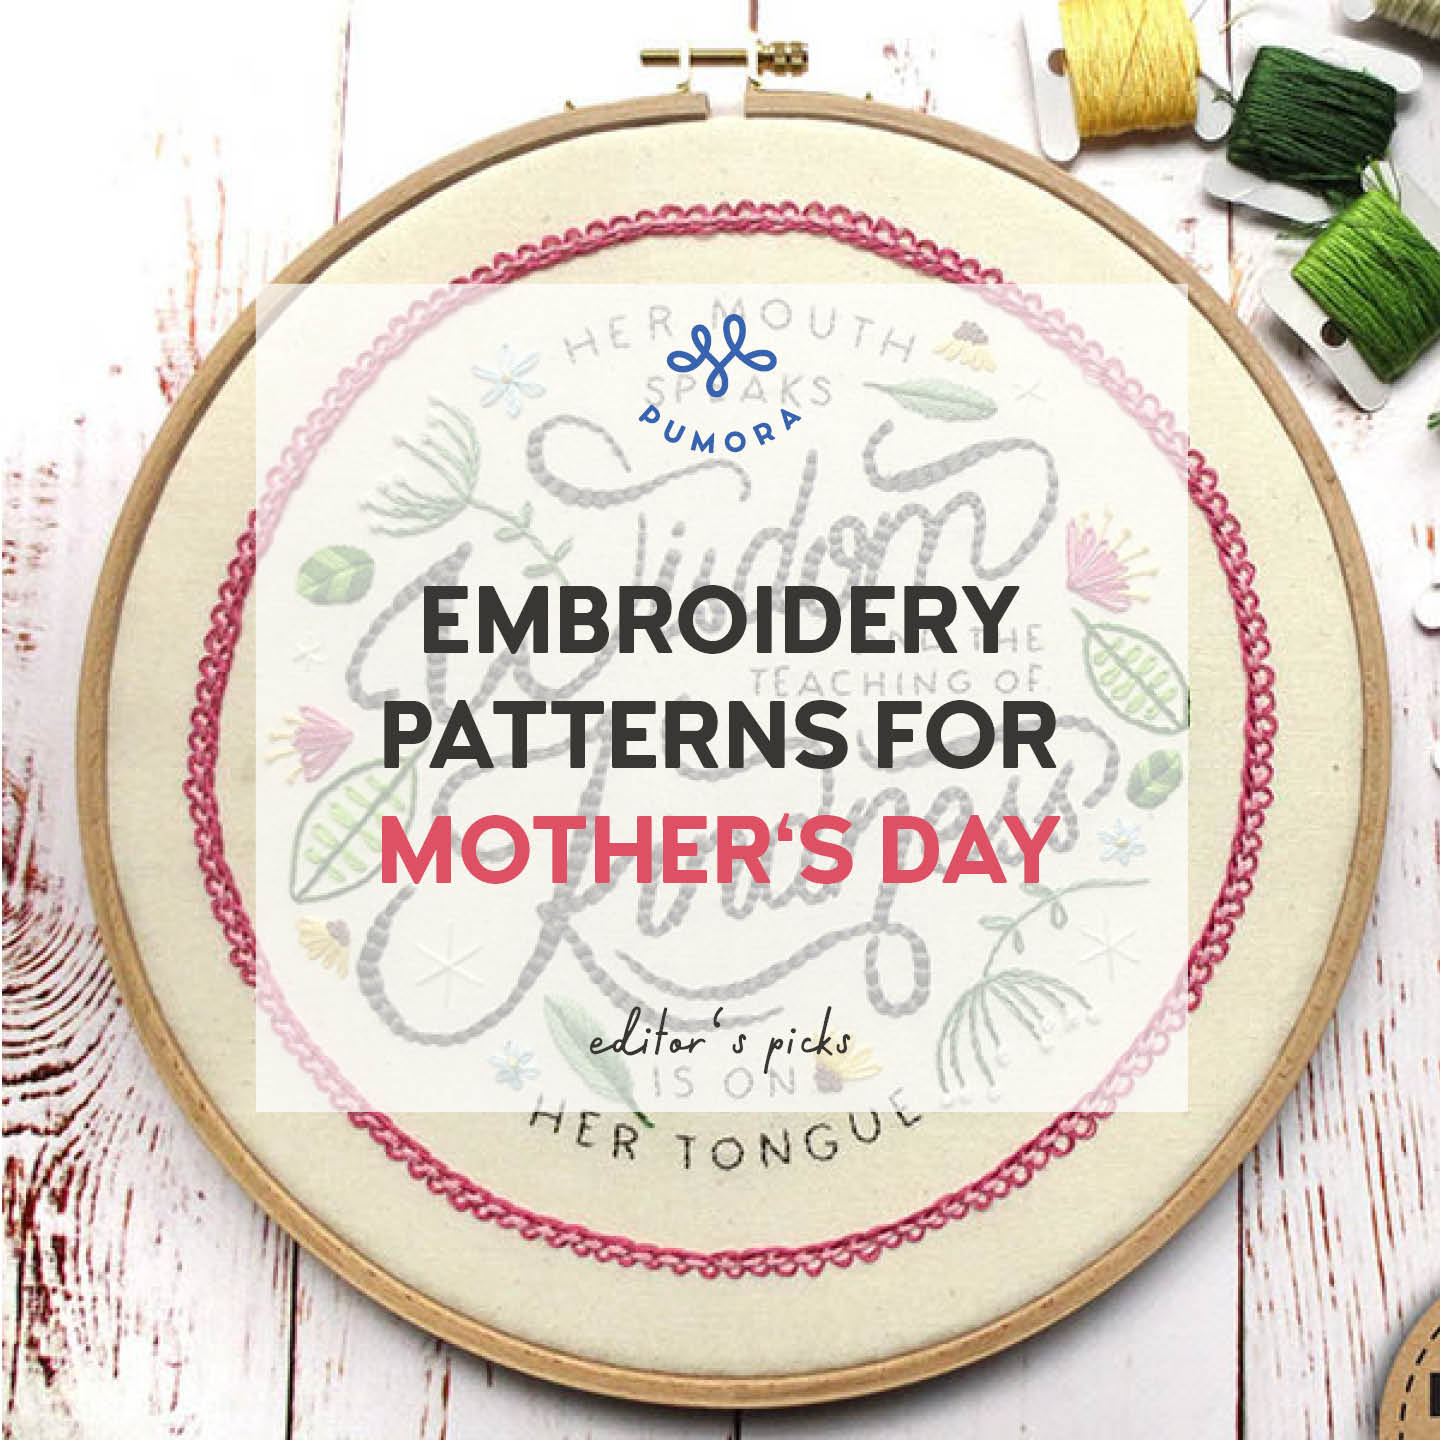 embroidery patterns for mother's day